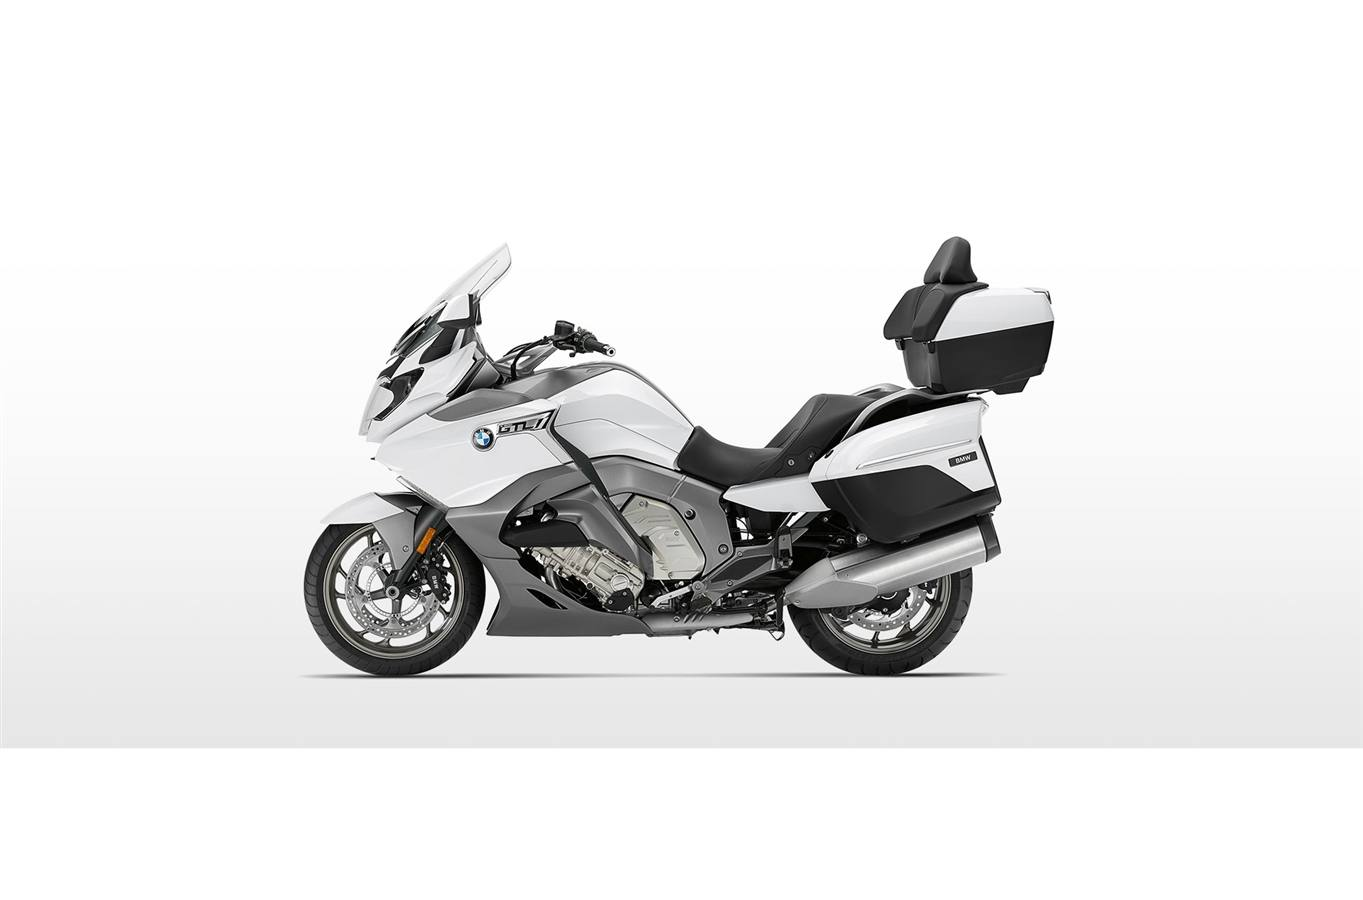 2019 BMW K 1600 GTL for sale in Wexford, PA  BMW Motorcycles